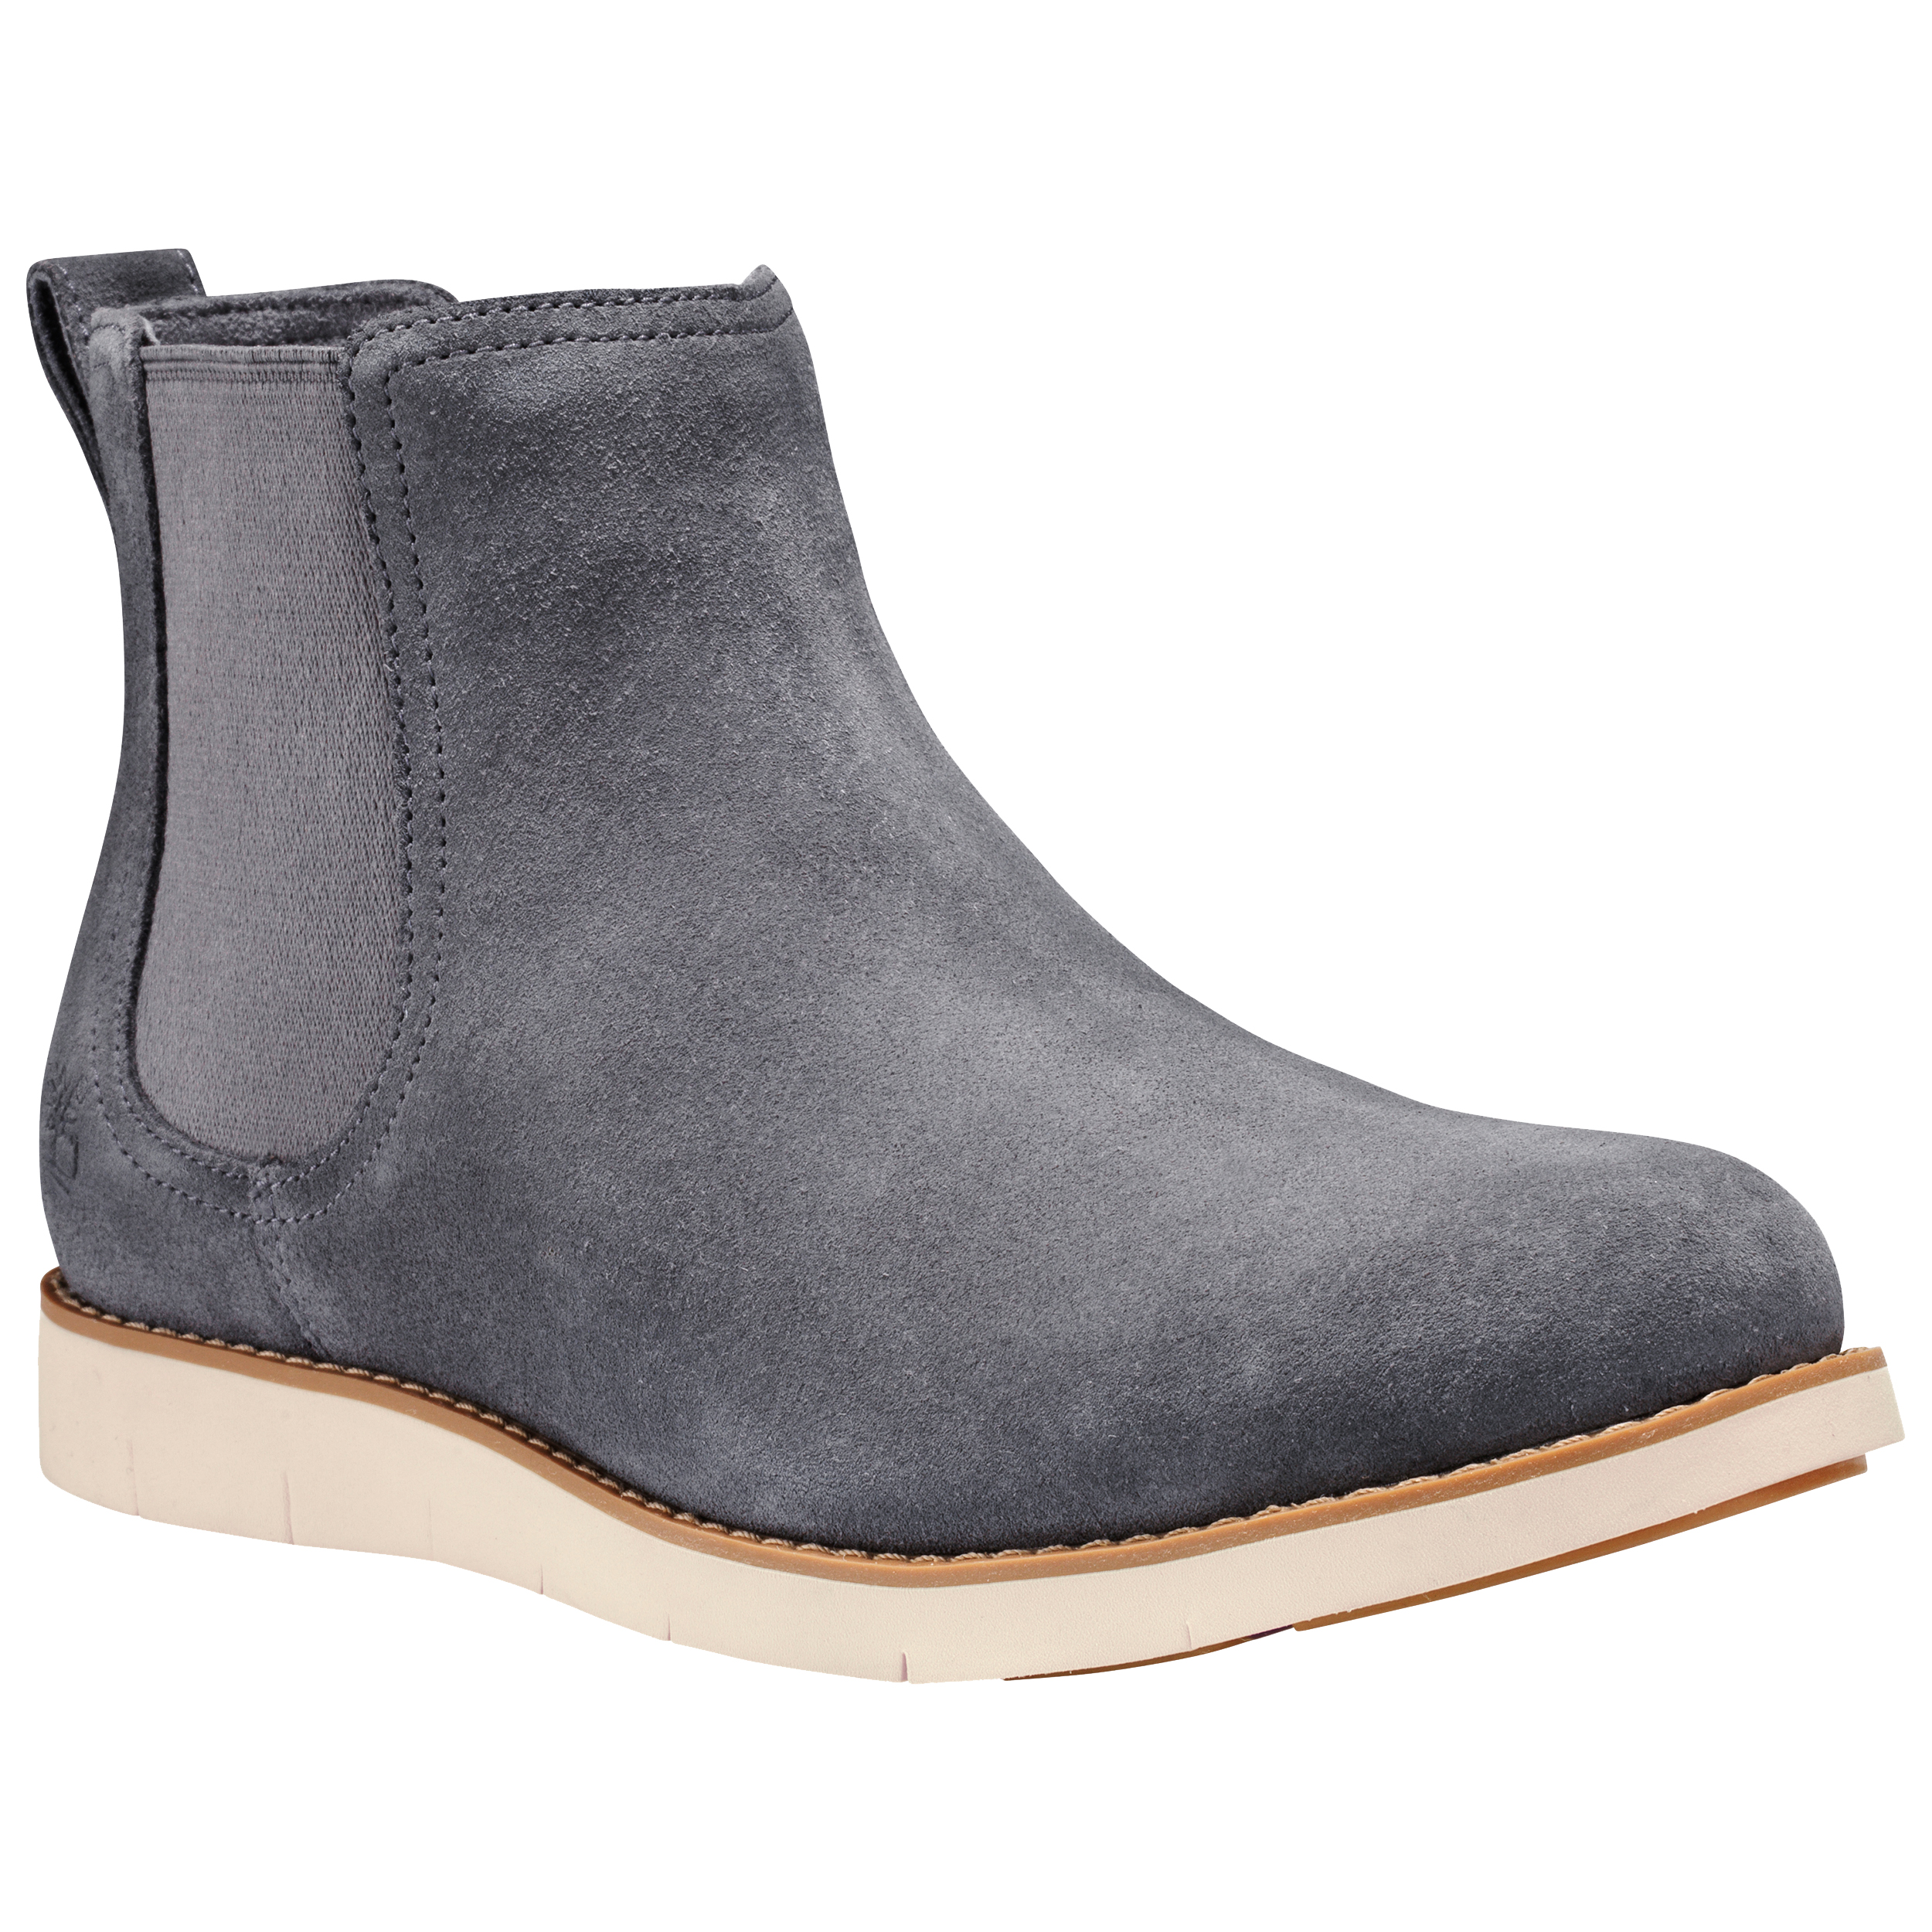 Timberland Lakeville Double Gore Chelsea Boots Women's